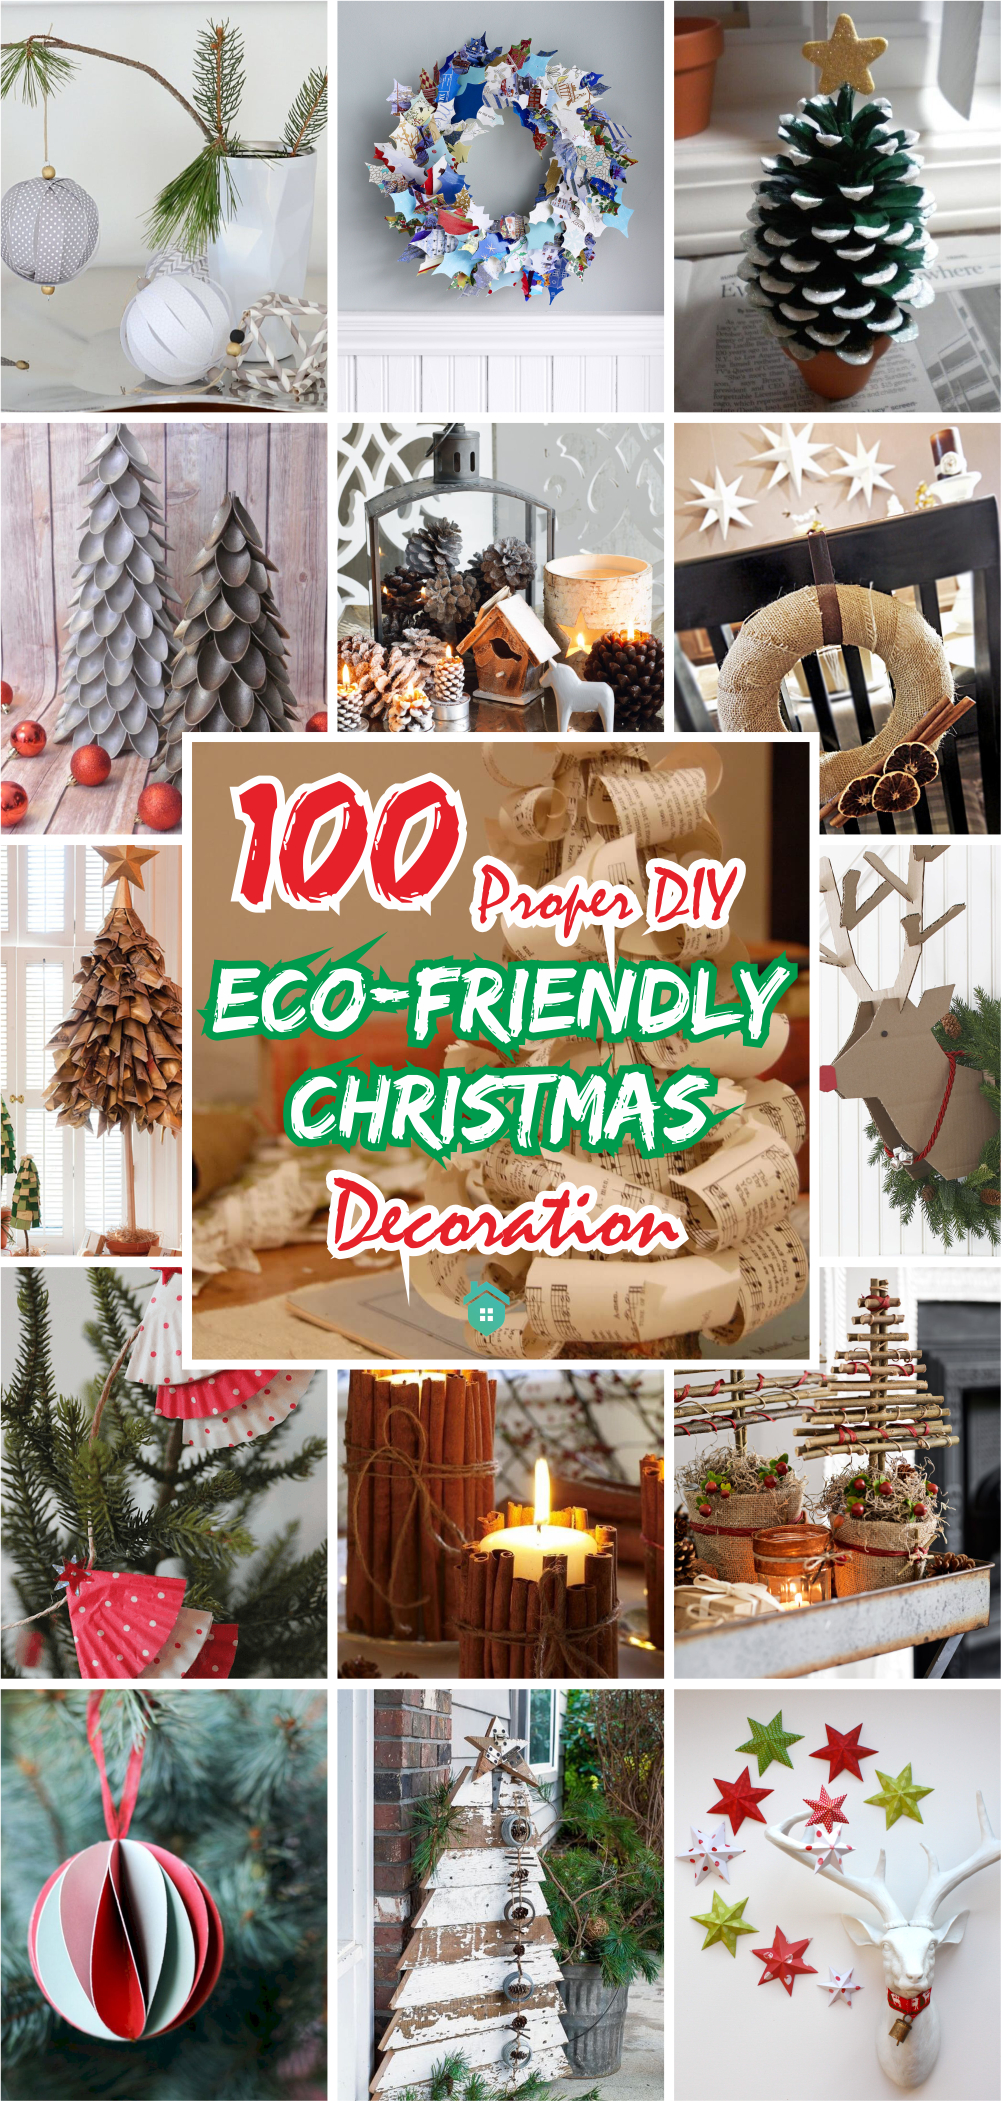 100 proper diy eco-friendly christmas decoration5